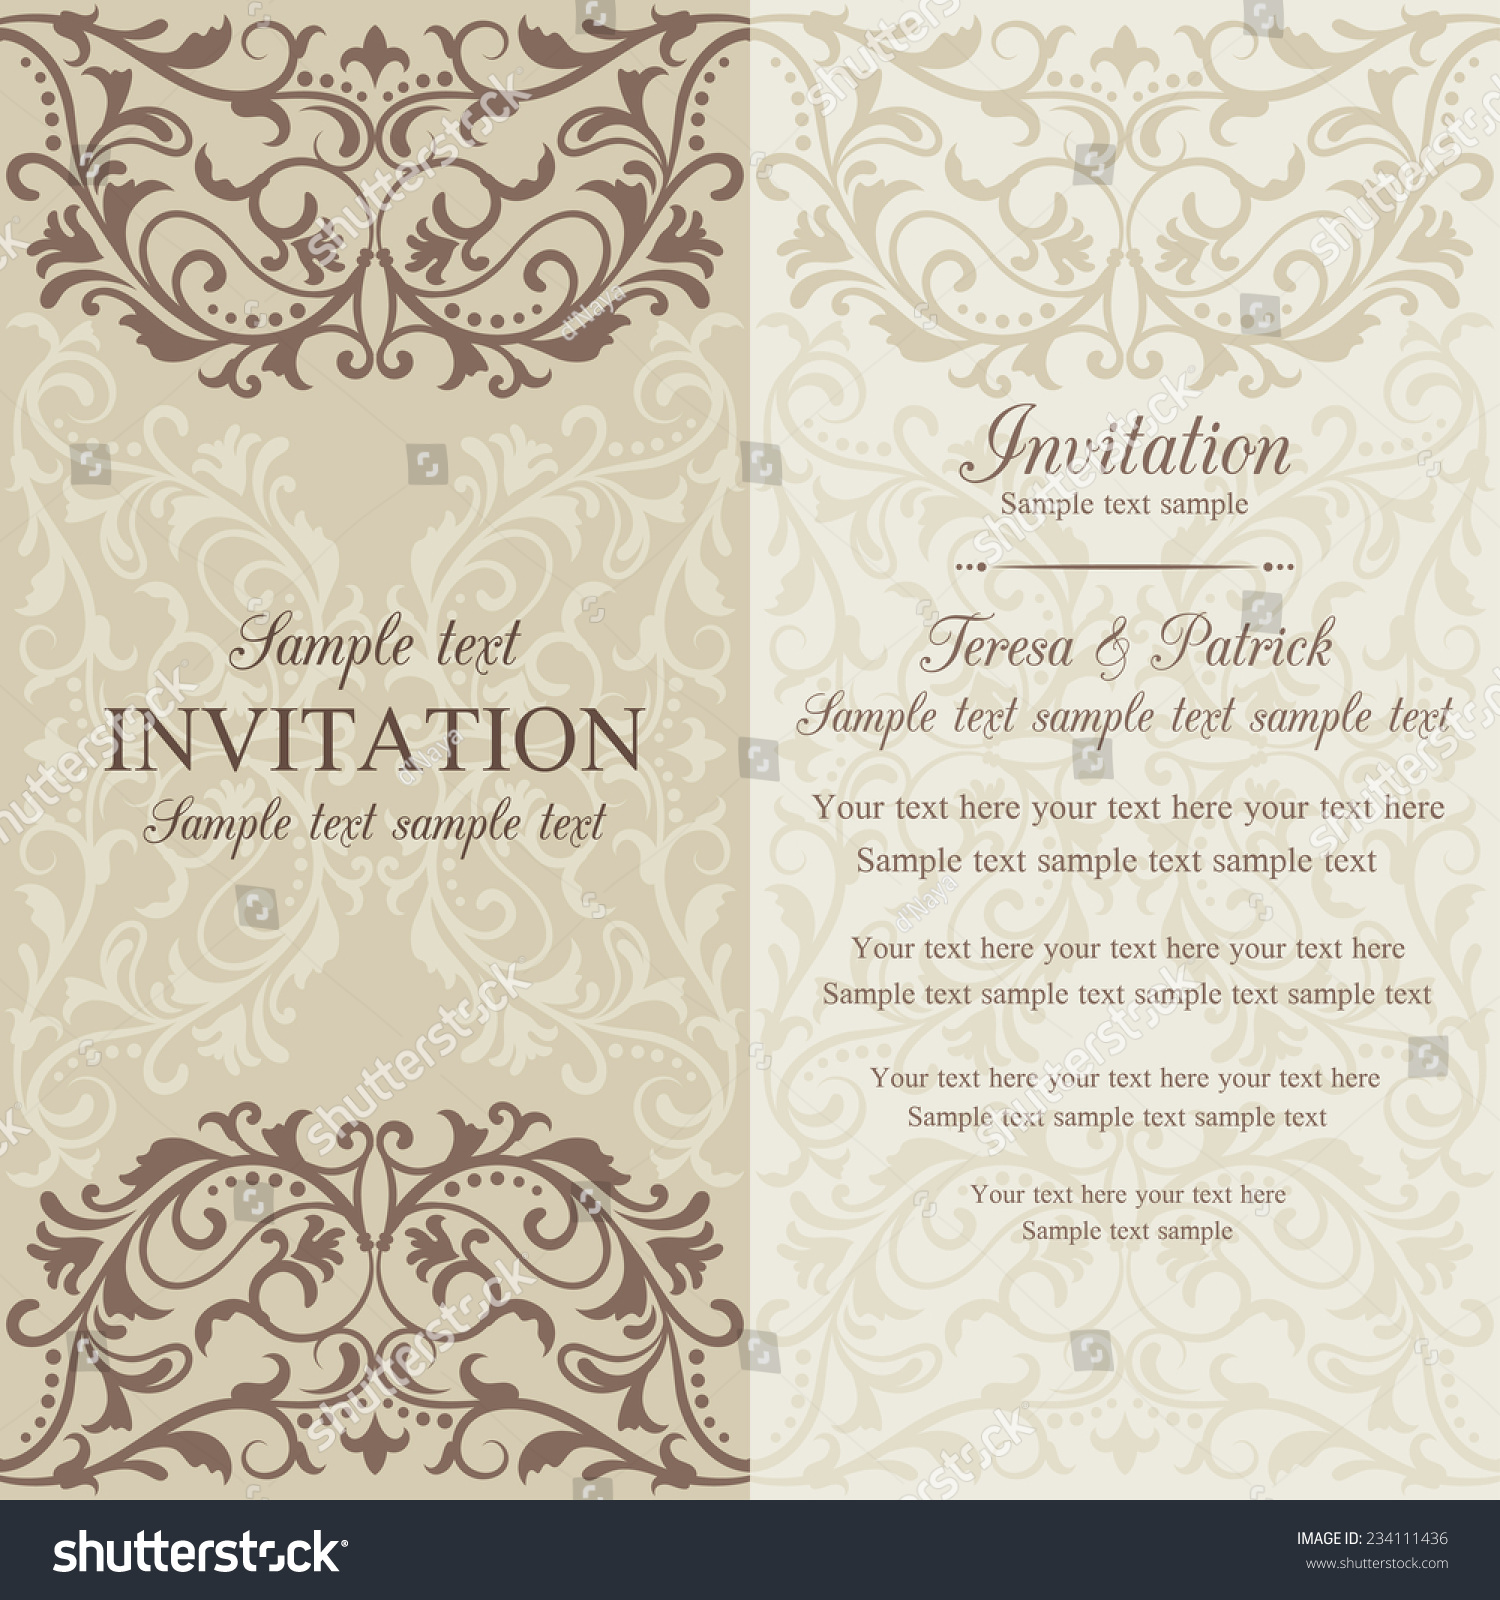 Wedding invitation cards baroque style brown and beige. Vintage ...